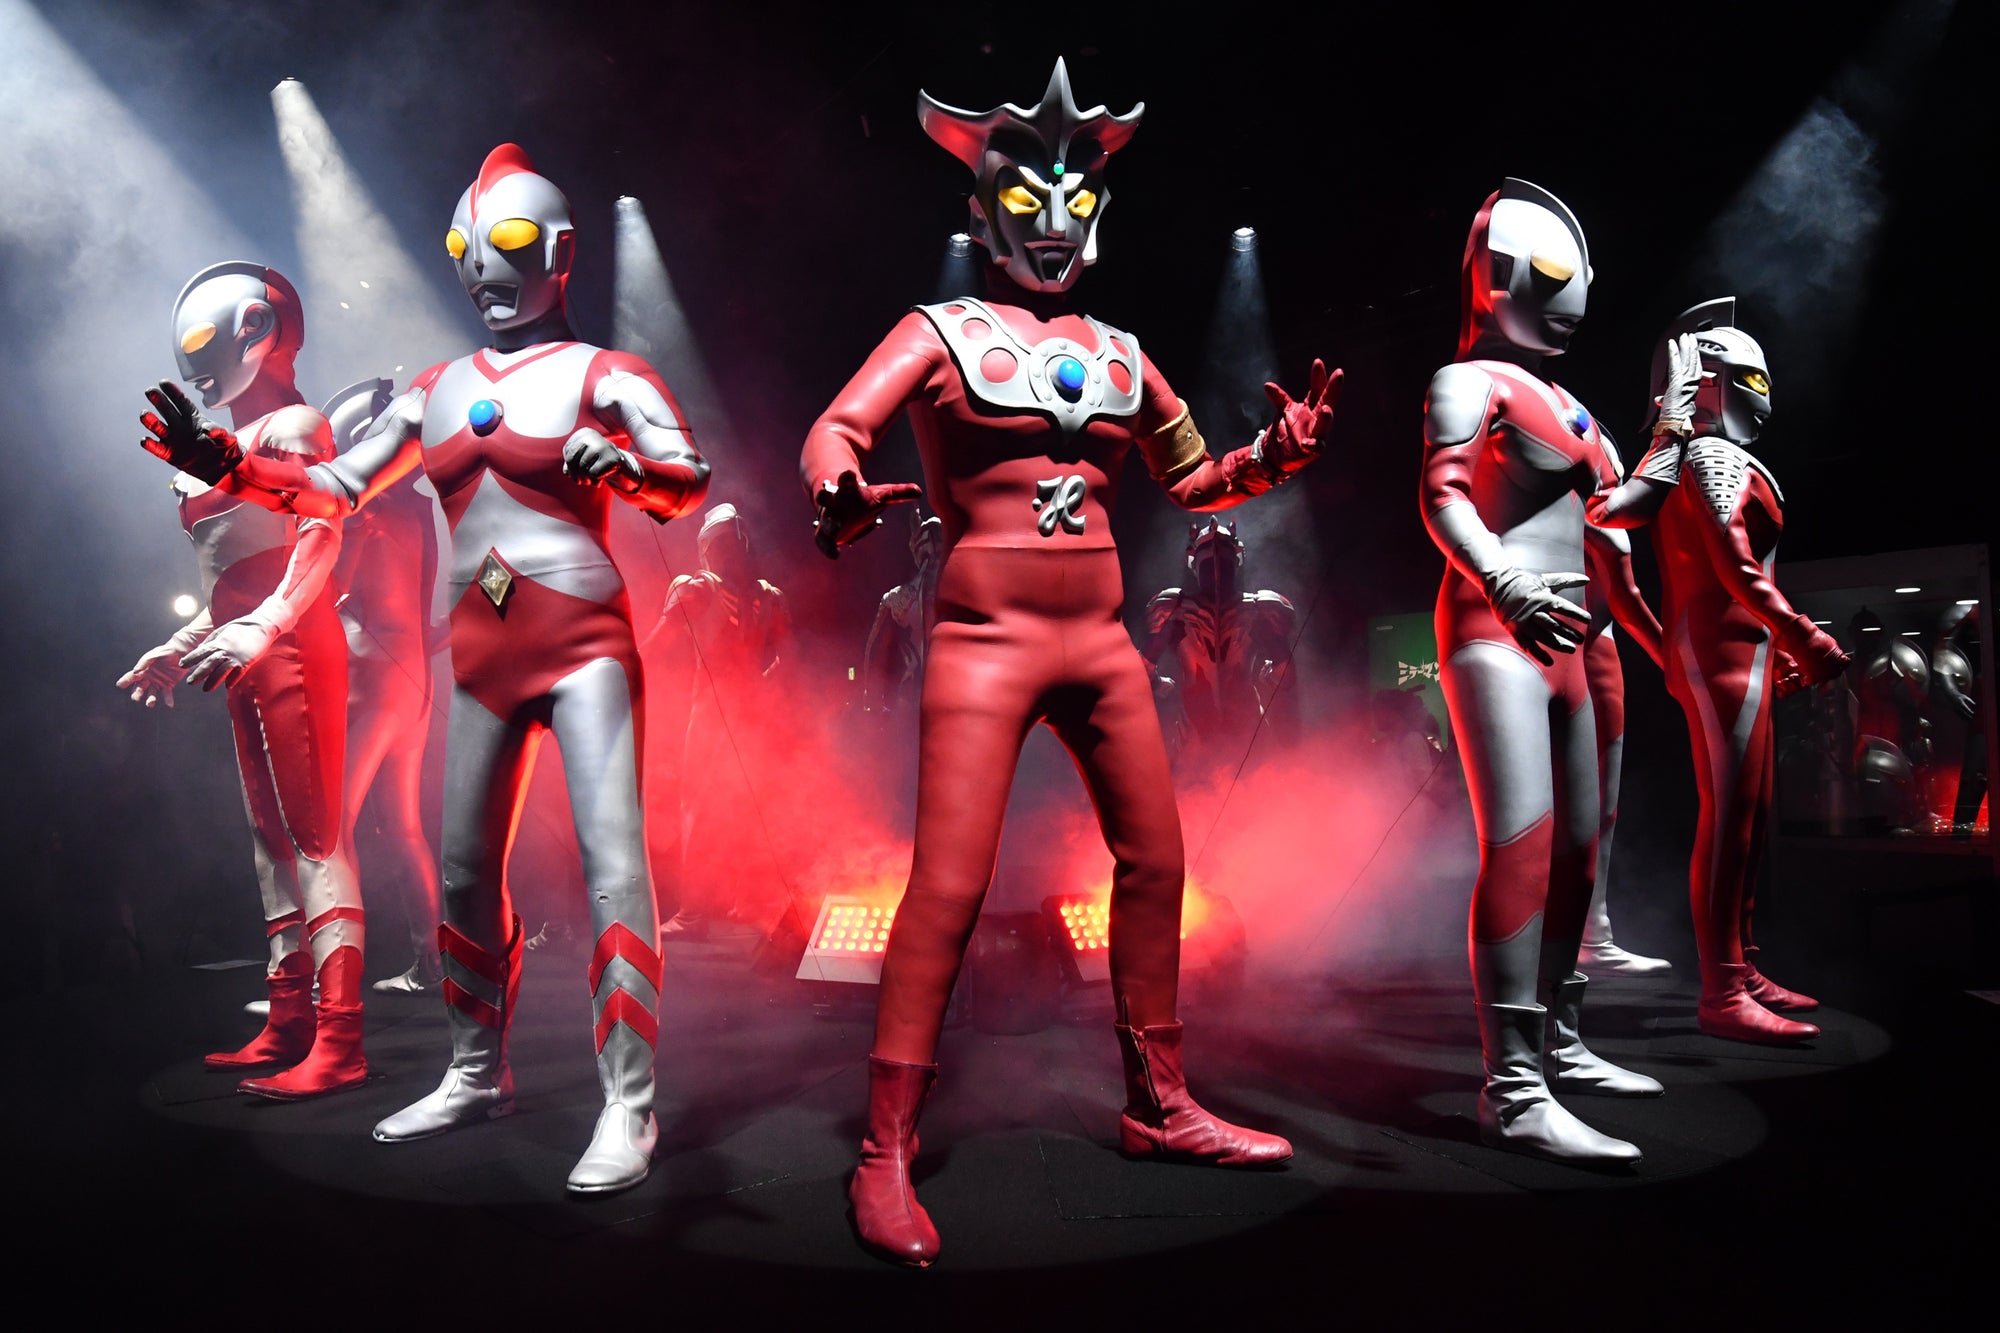 DNA of Tokusatsu Ultraman Genealogy Safely Lands at Tokyo Dome City